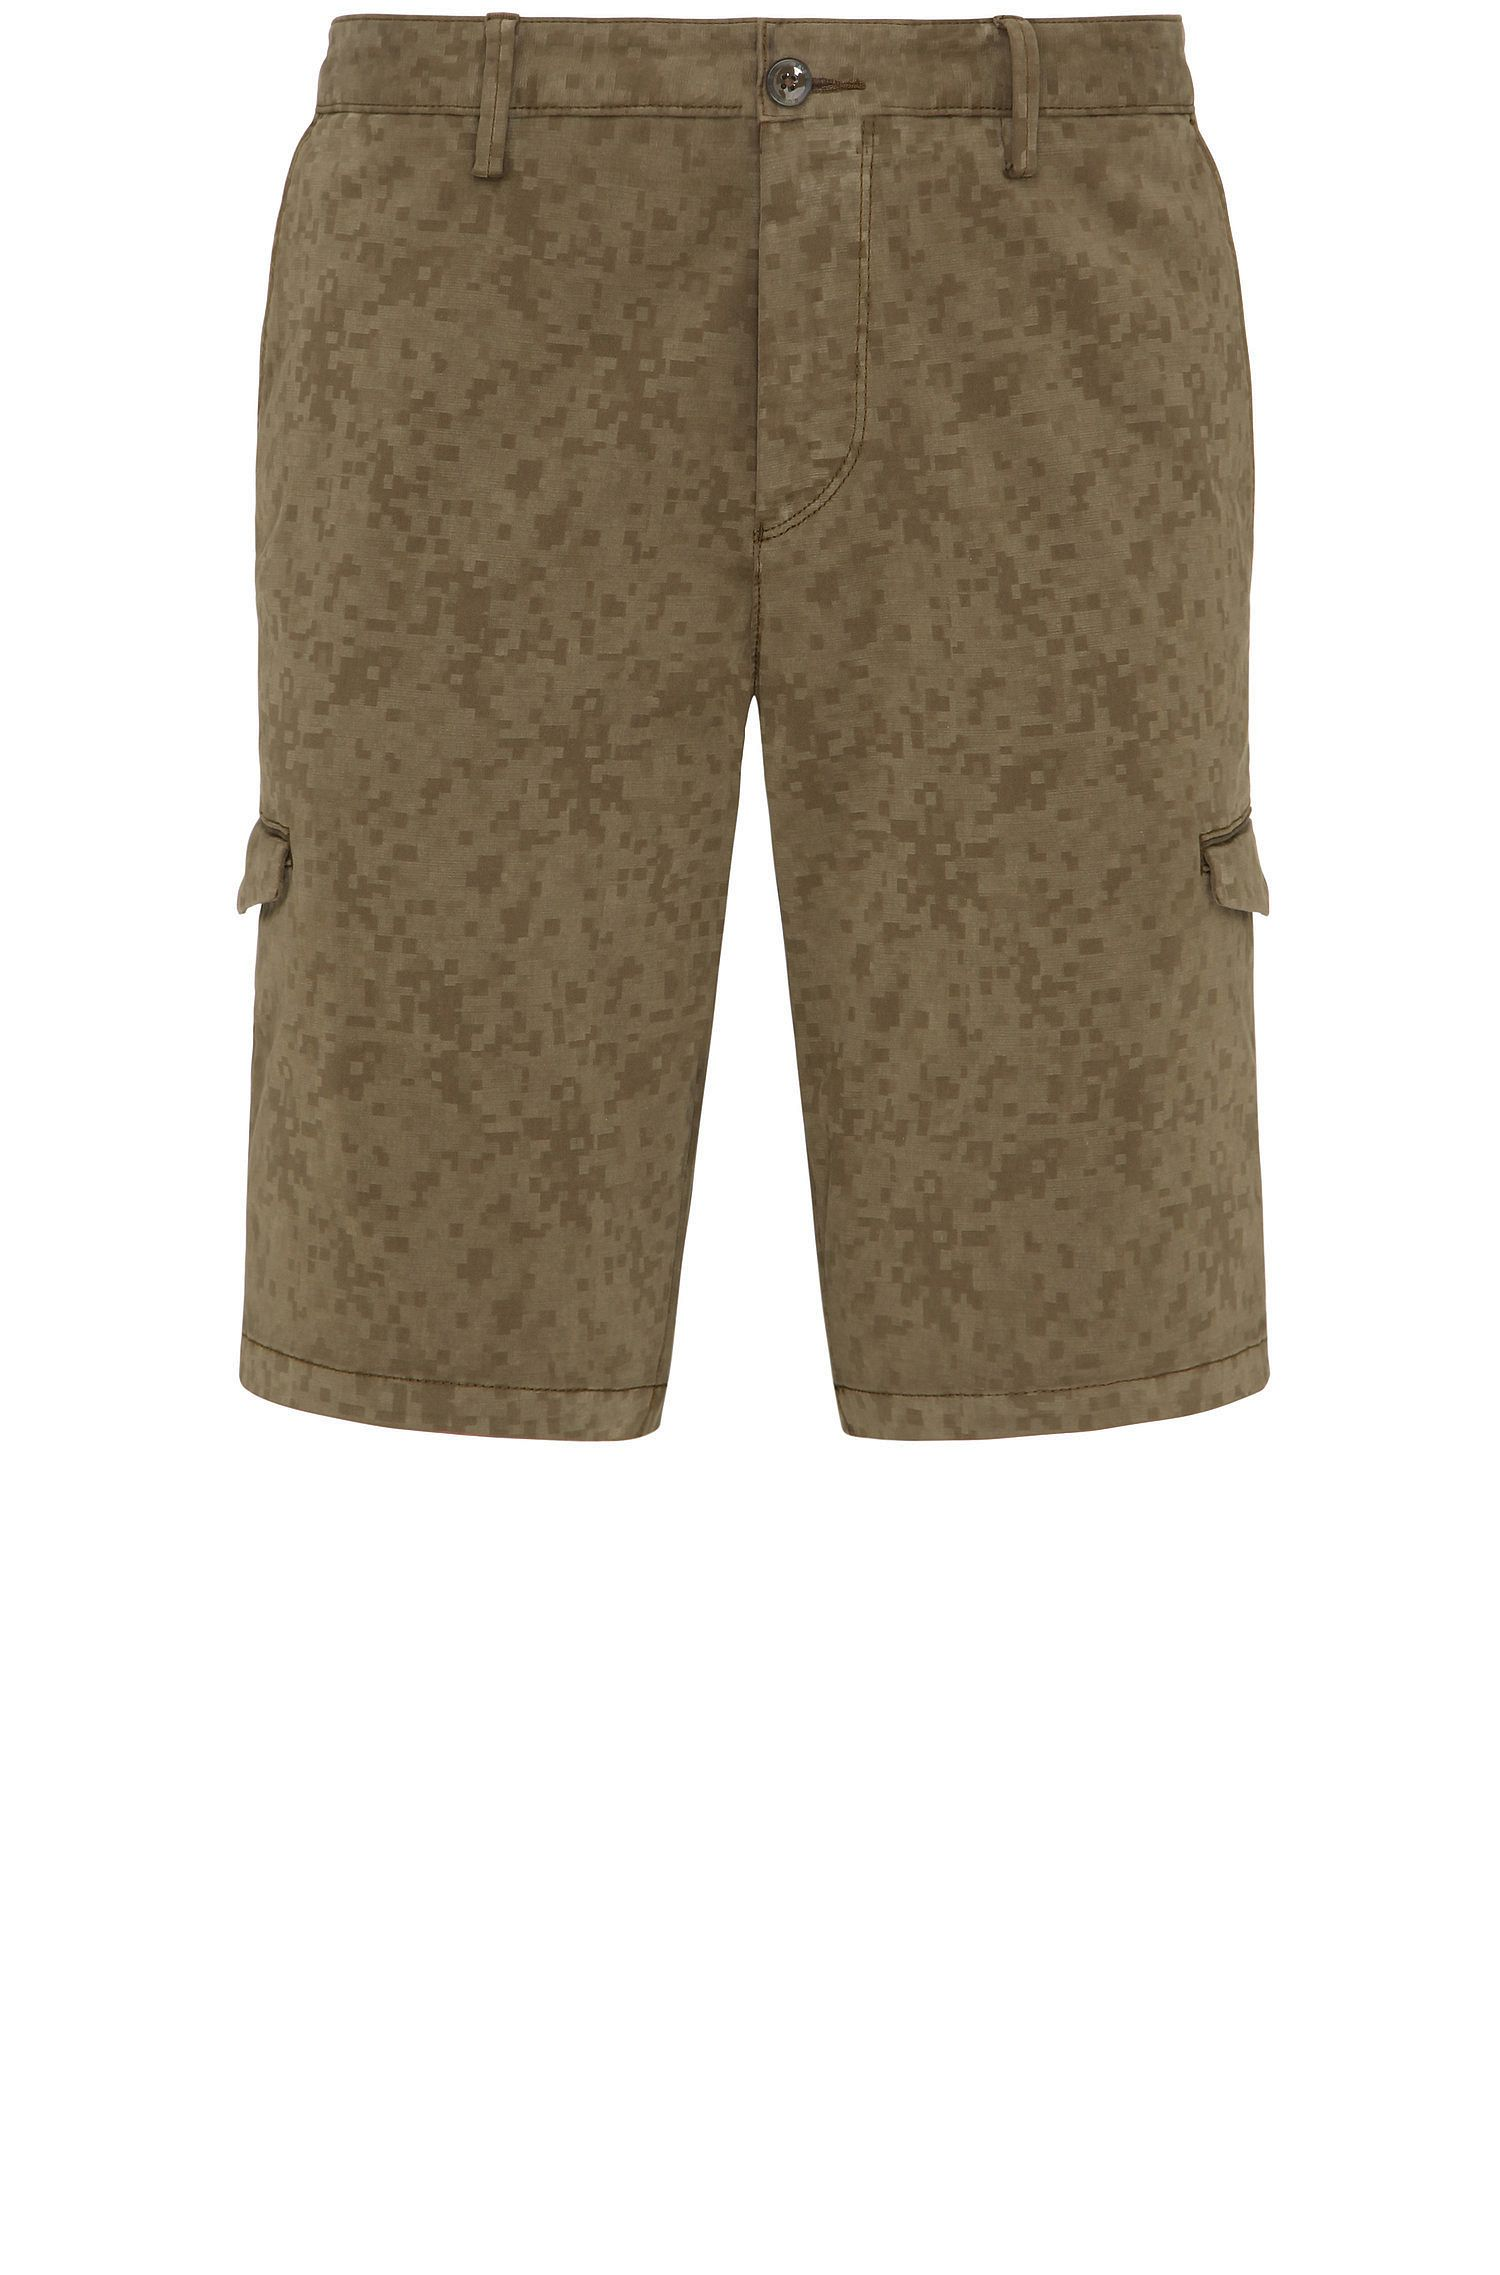 Gemusterte Slim-Fit Cargo-Shorts aus Stretch-Baumwolle: ´Liem4-2-D`